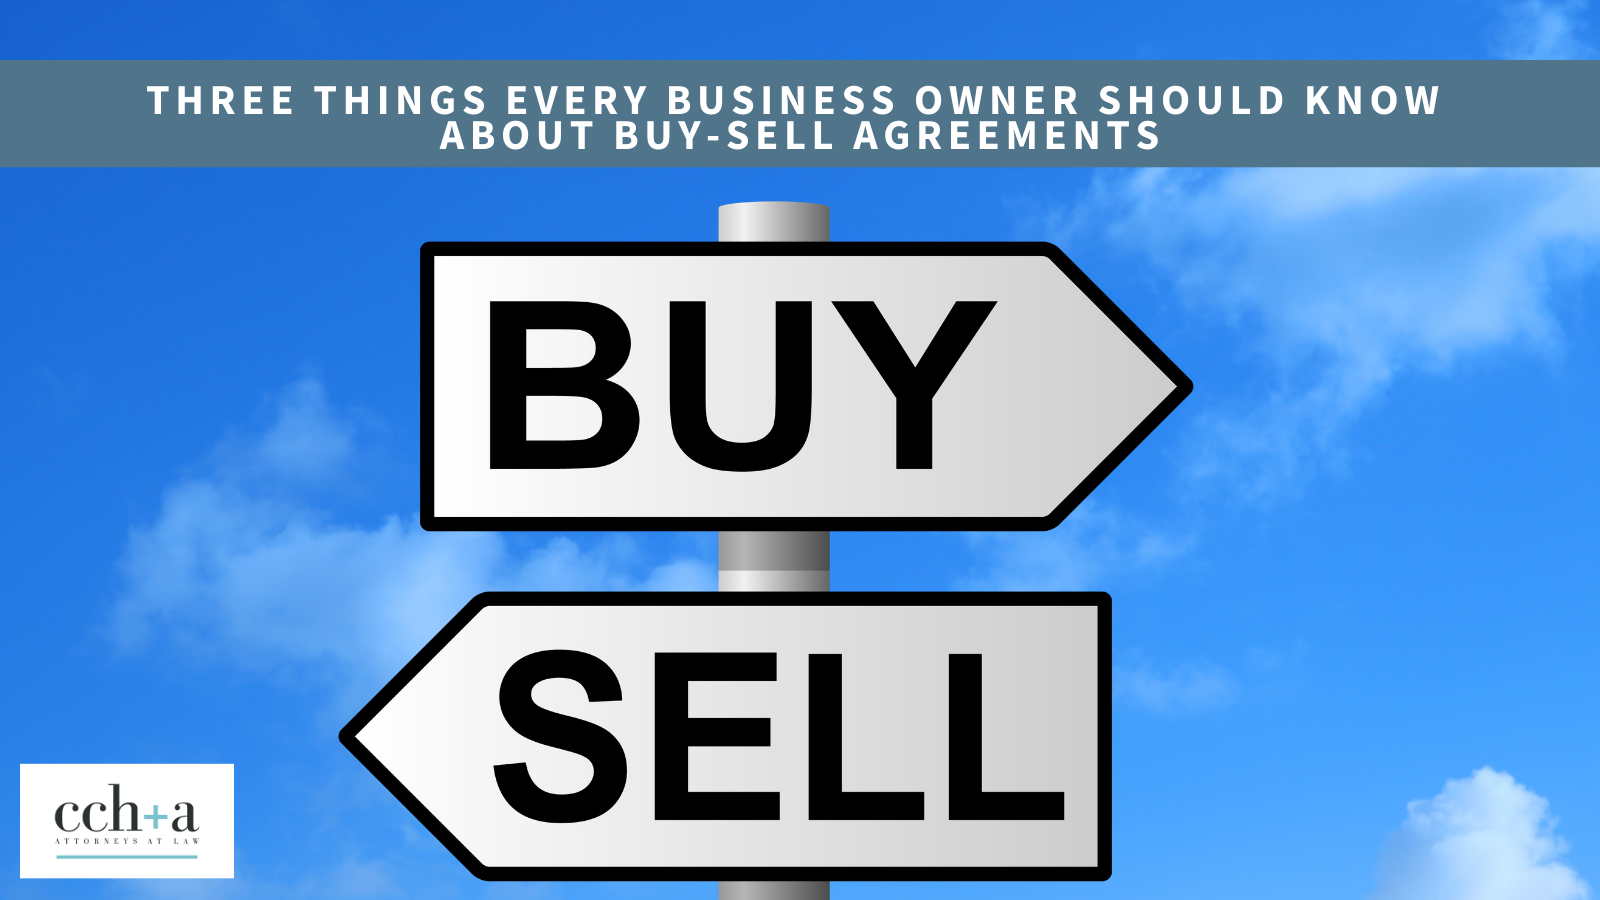 Ccha march 2021 three things to know about buy sell agreements 1